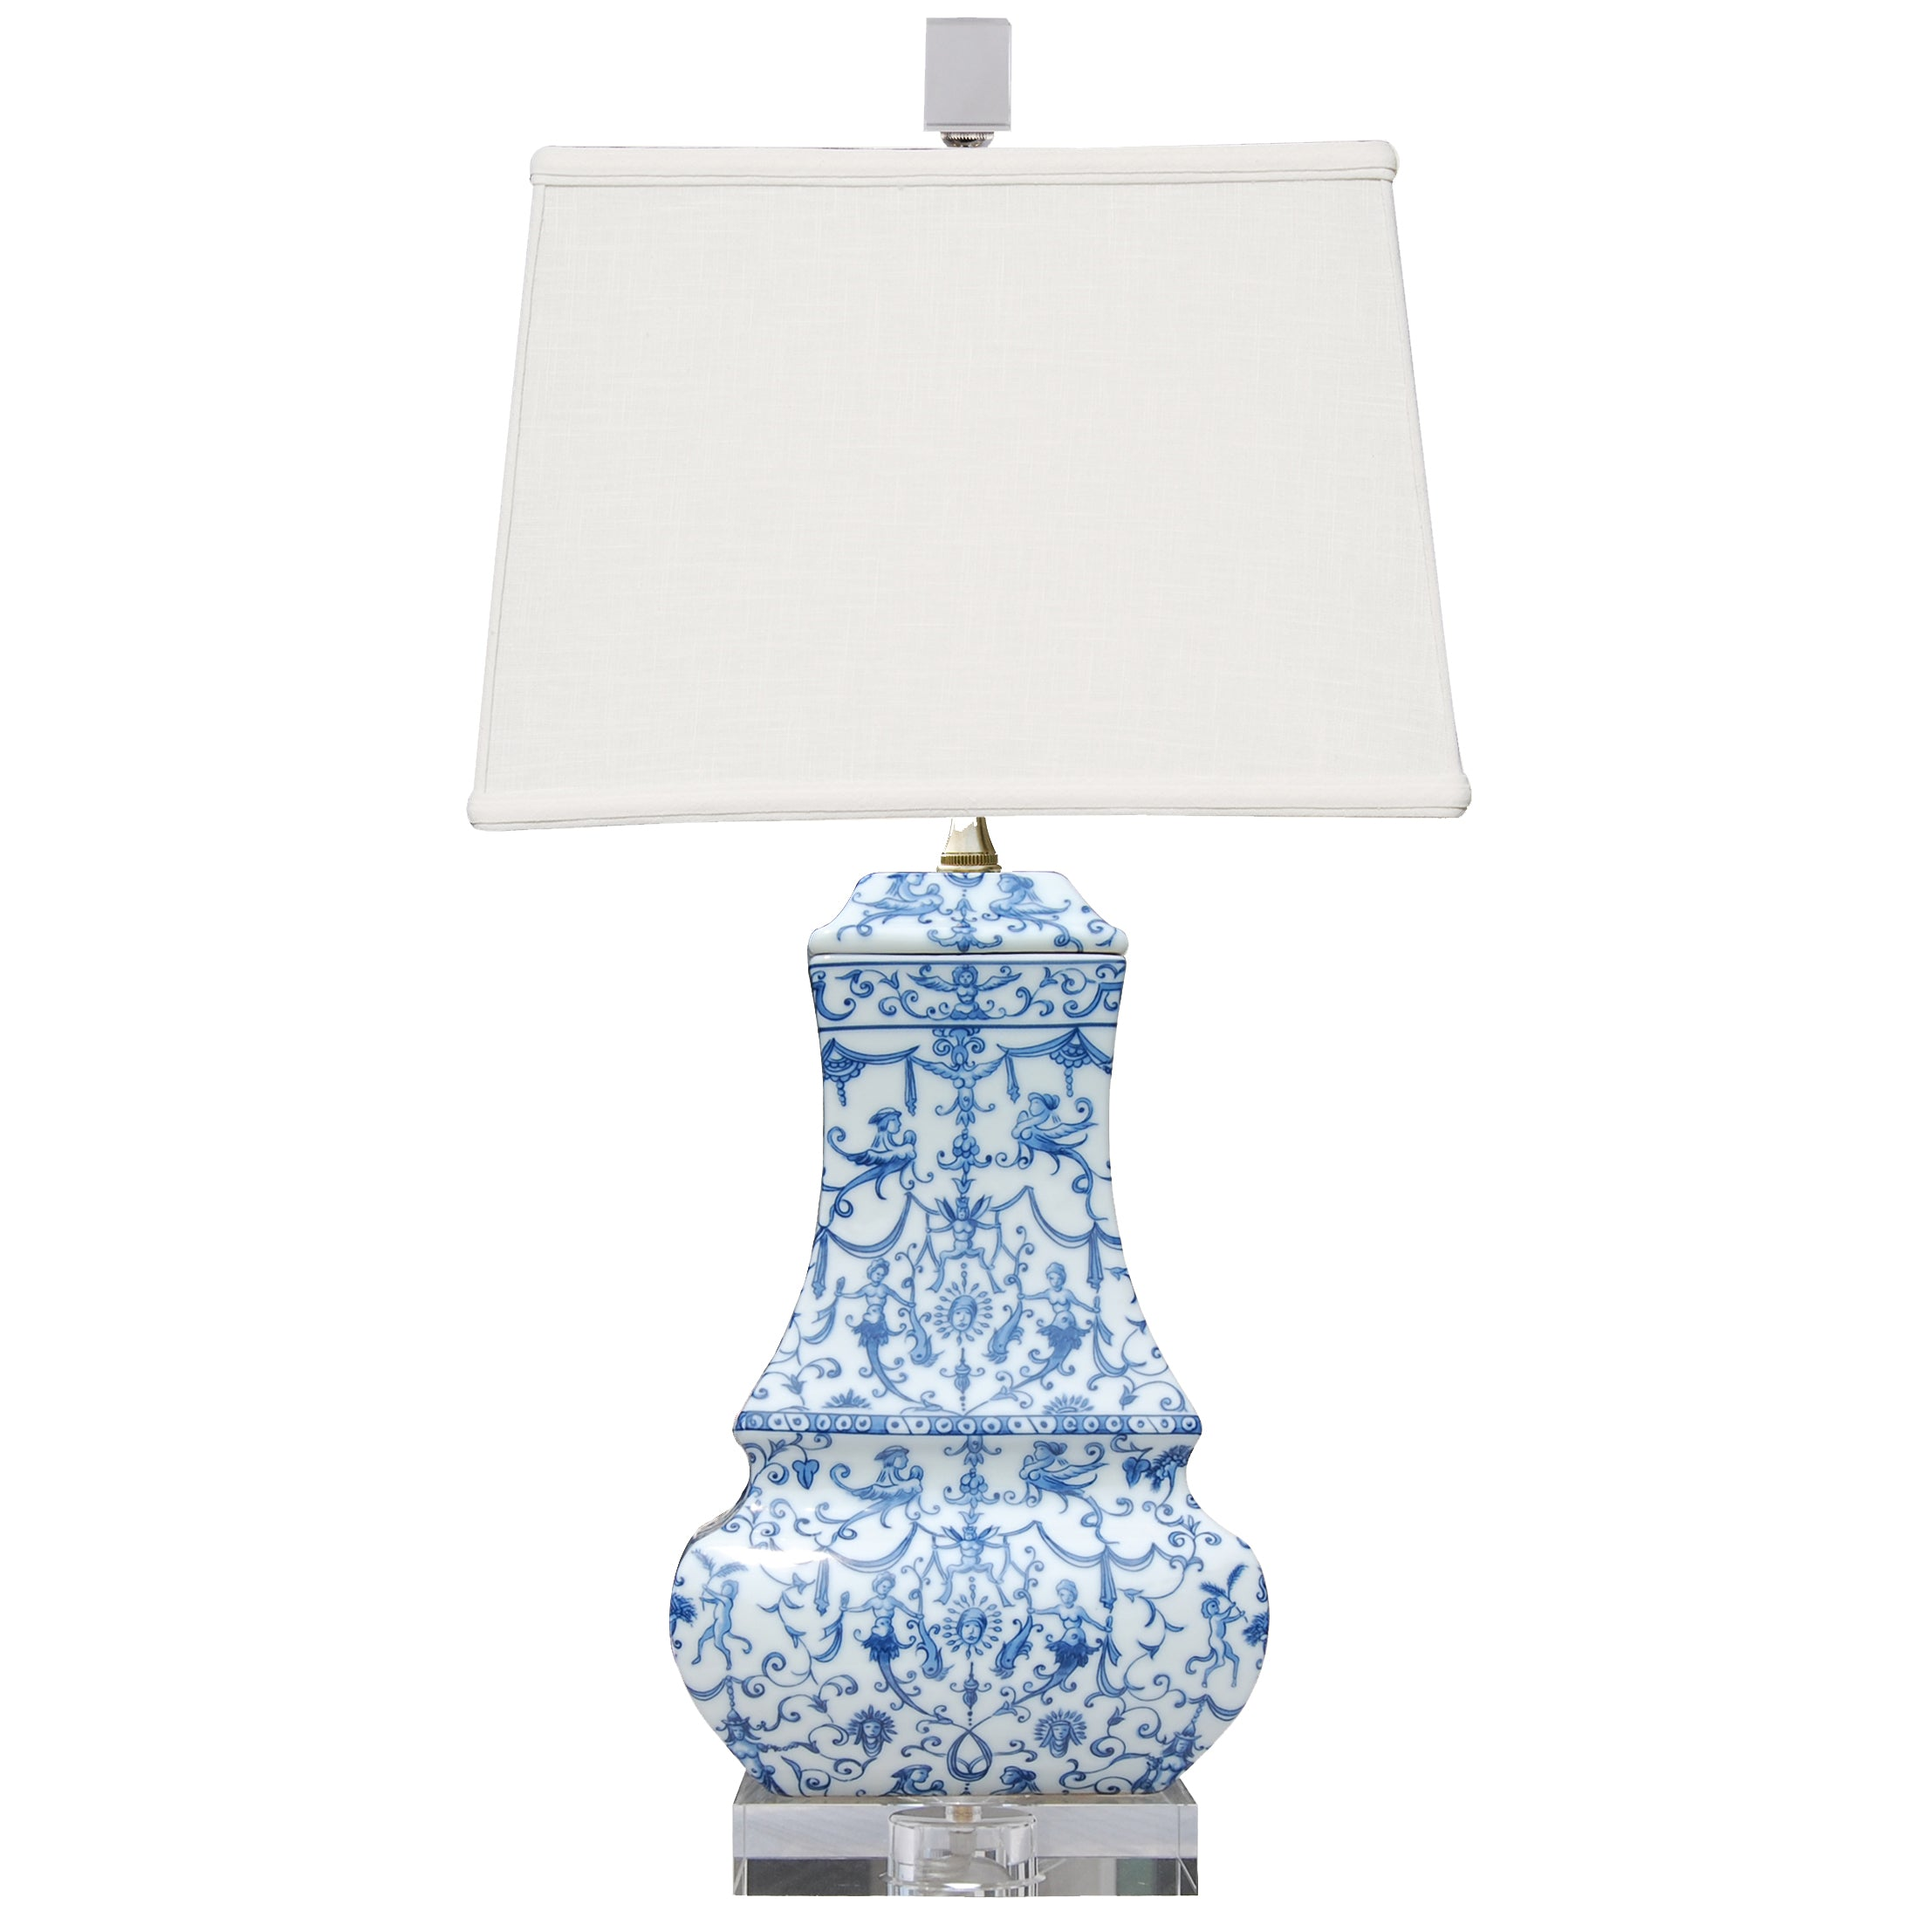 Blue U0026 White Porcelain Table Lamp With Crystal Base